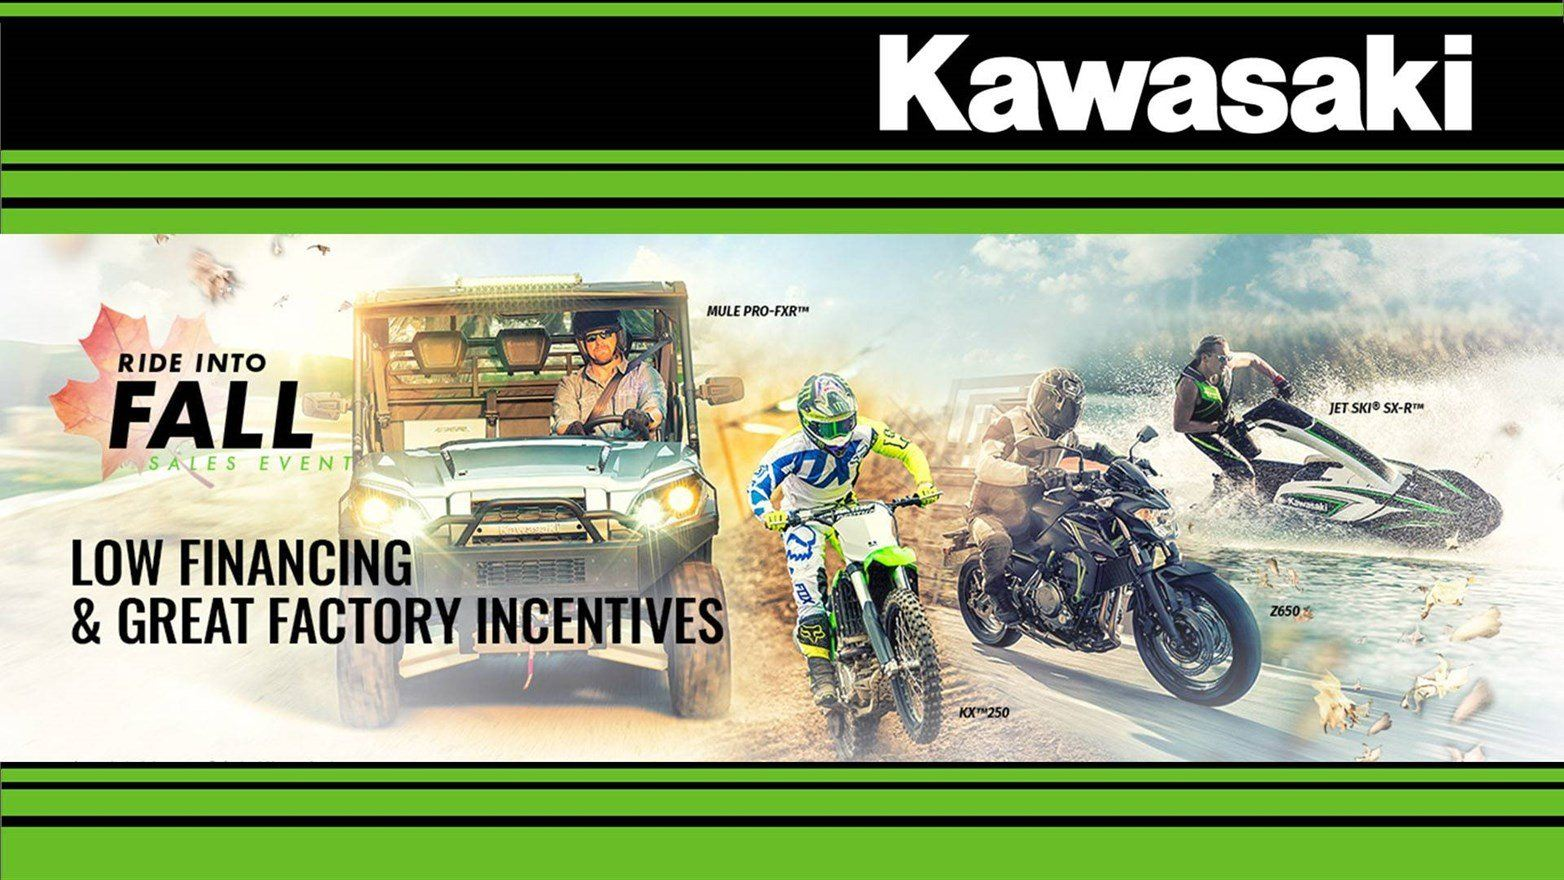 Kawasaki - Ride Into Fall Sales Event